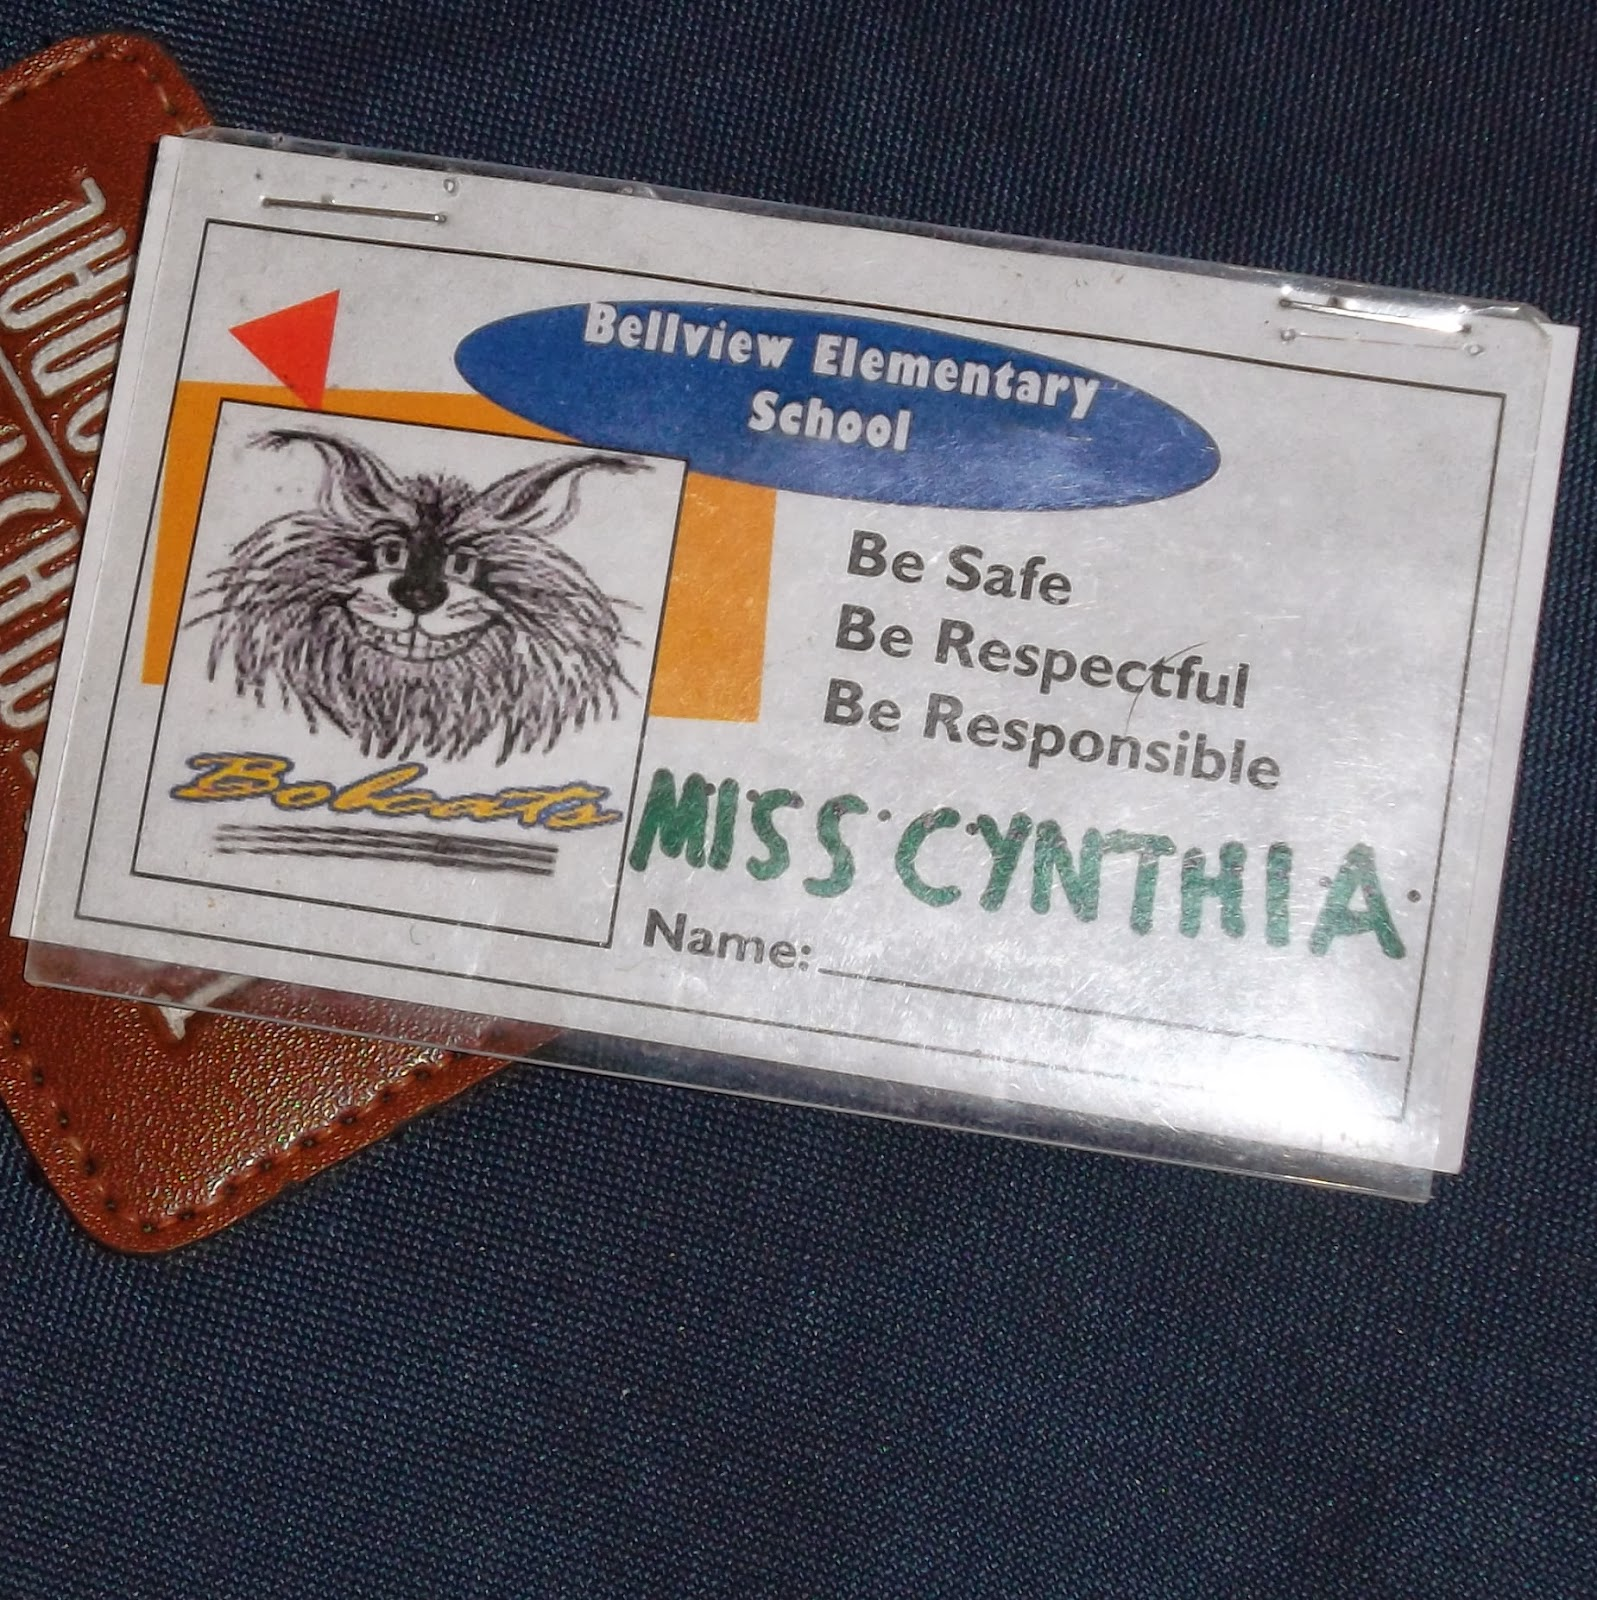 "Business-card sized piece of paper reading ""Bellview Elementary School. Be Safe. Be Respectful. Be Responsible,"" displaying line-drawn image of the school's Bobcat mascot. ""Miss Cynthia"" is hand-written above a space to write in a name, and the entire ticket is enclosed inside a clear plastic ID holder."